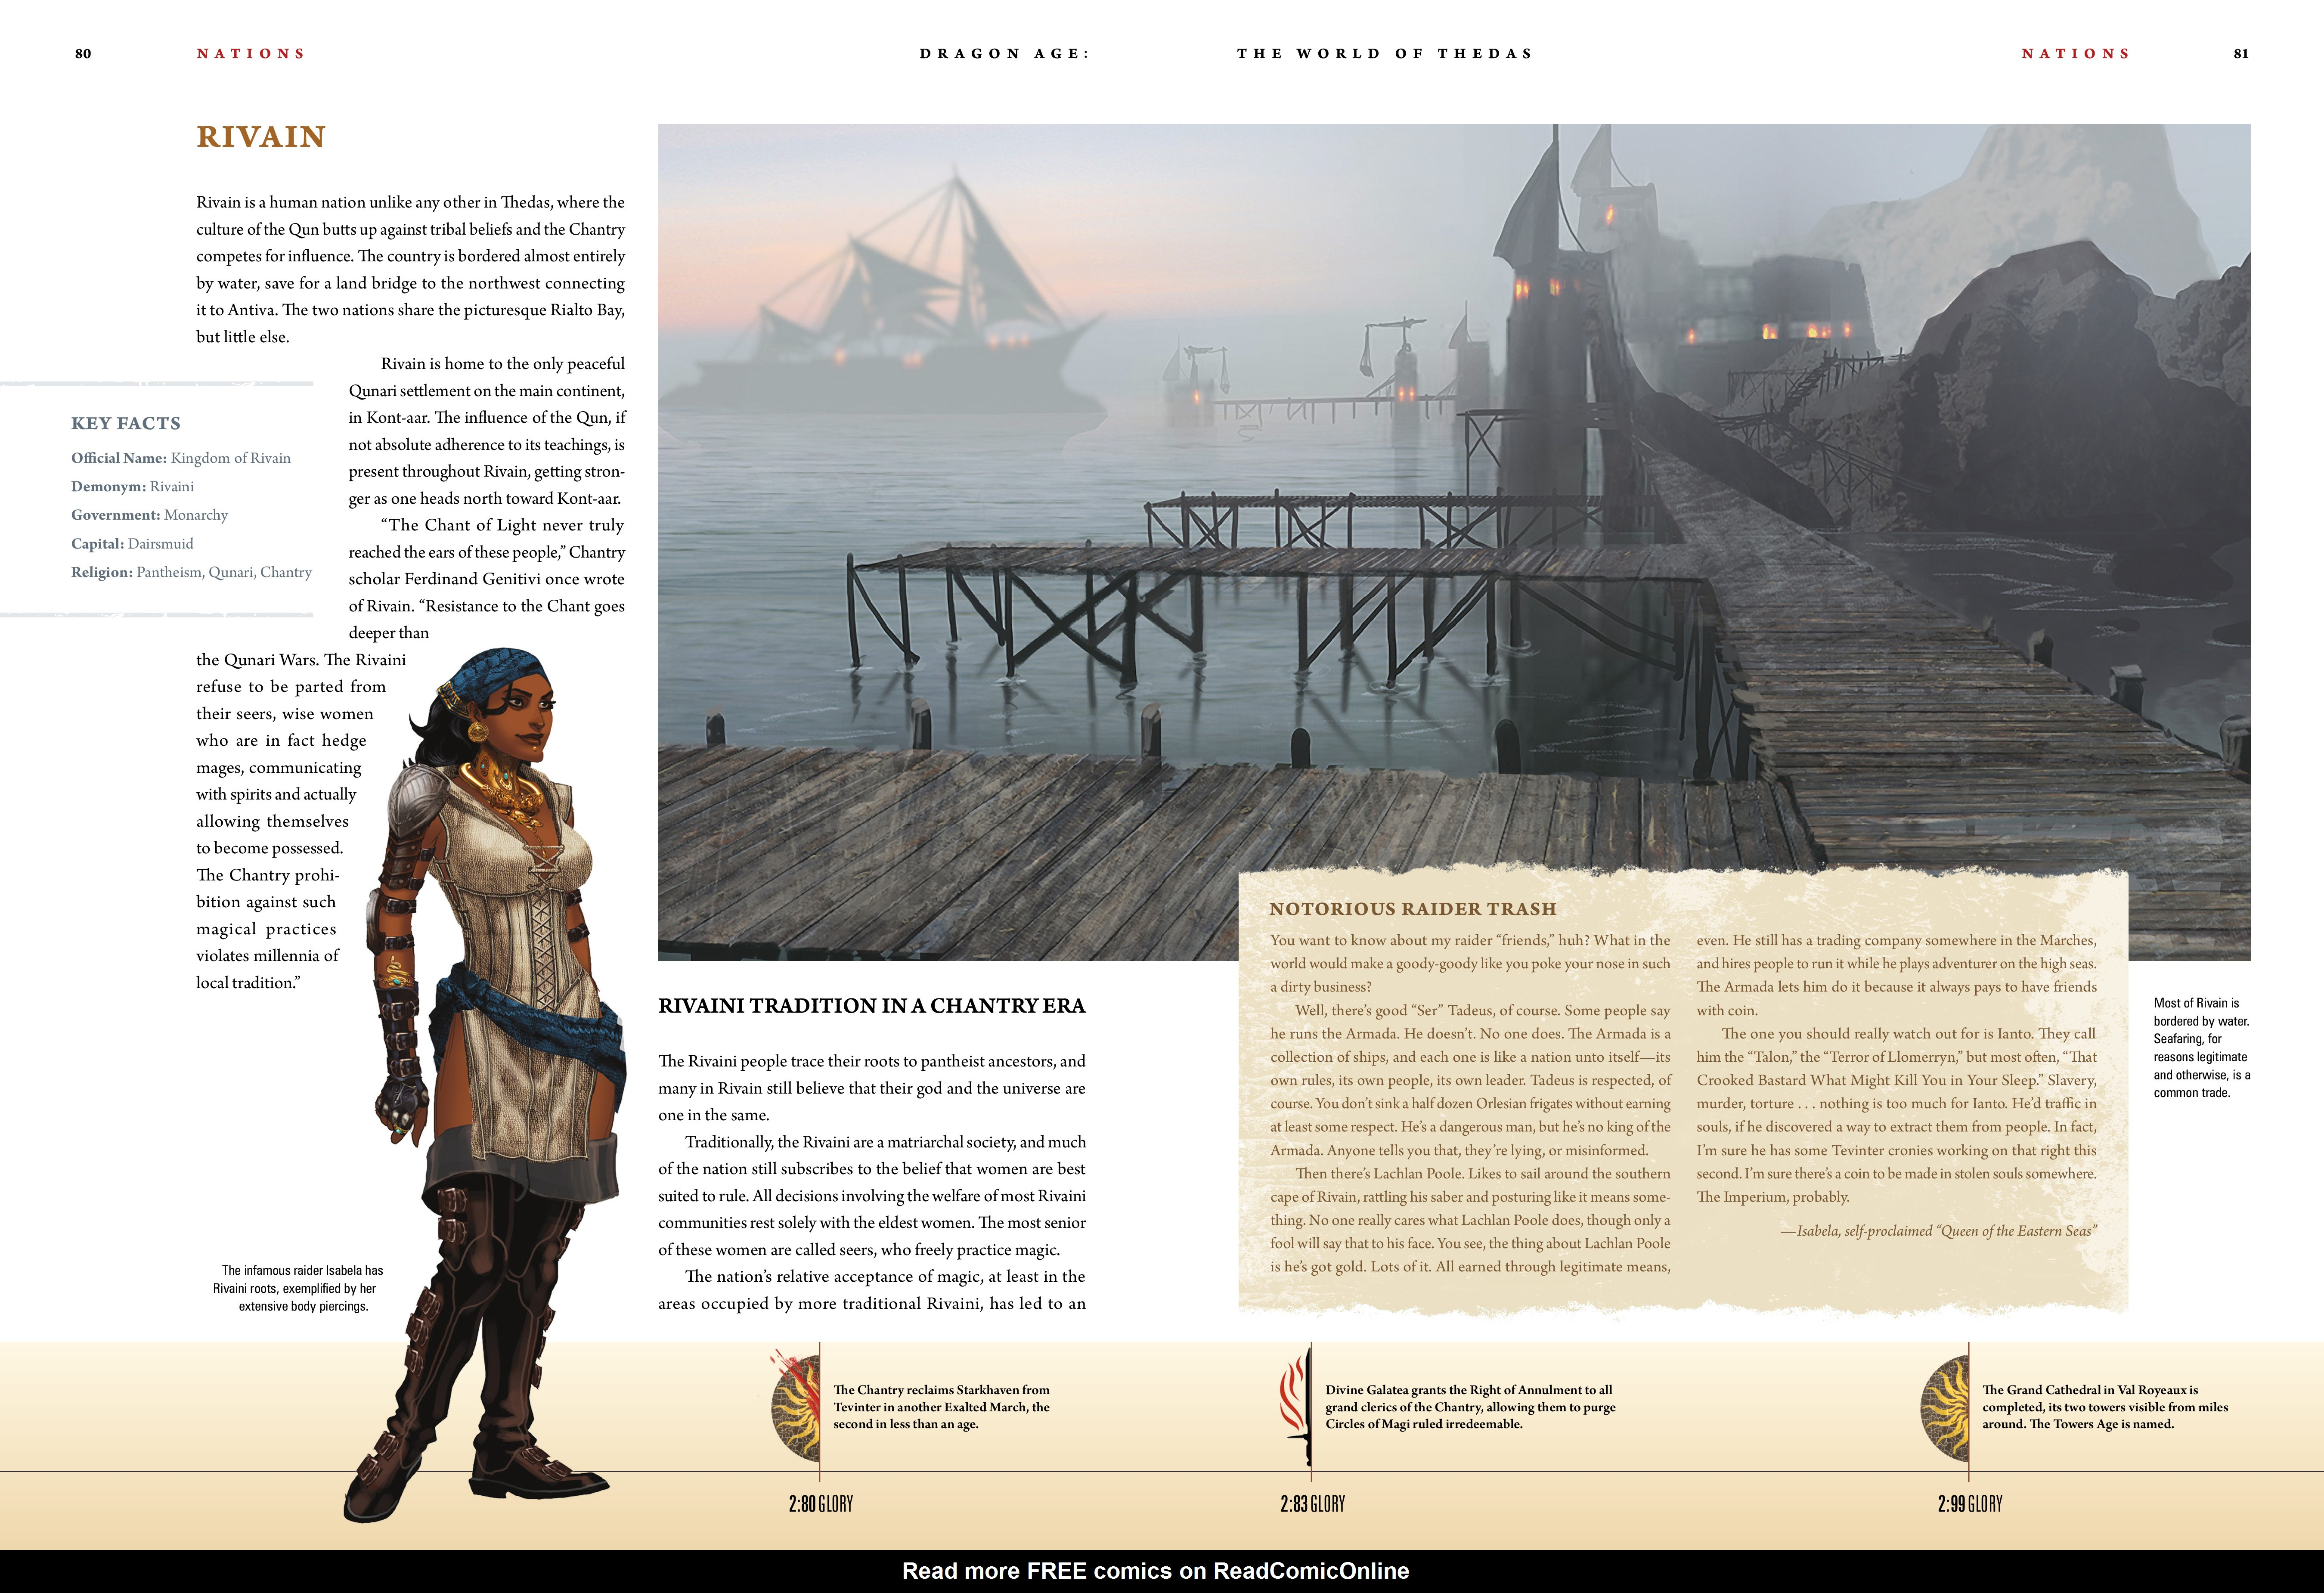 Read online Dragon Age: The World of Thedas comic -  Issue # TPB 1 - 65